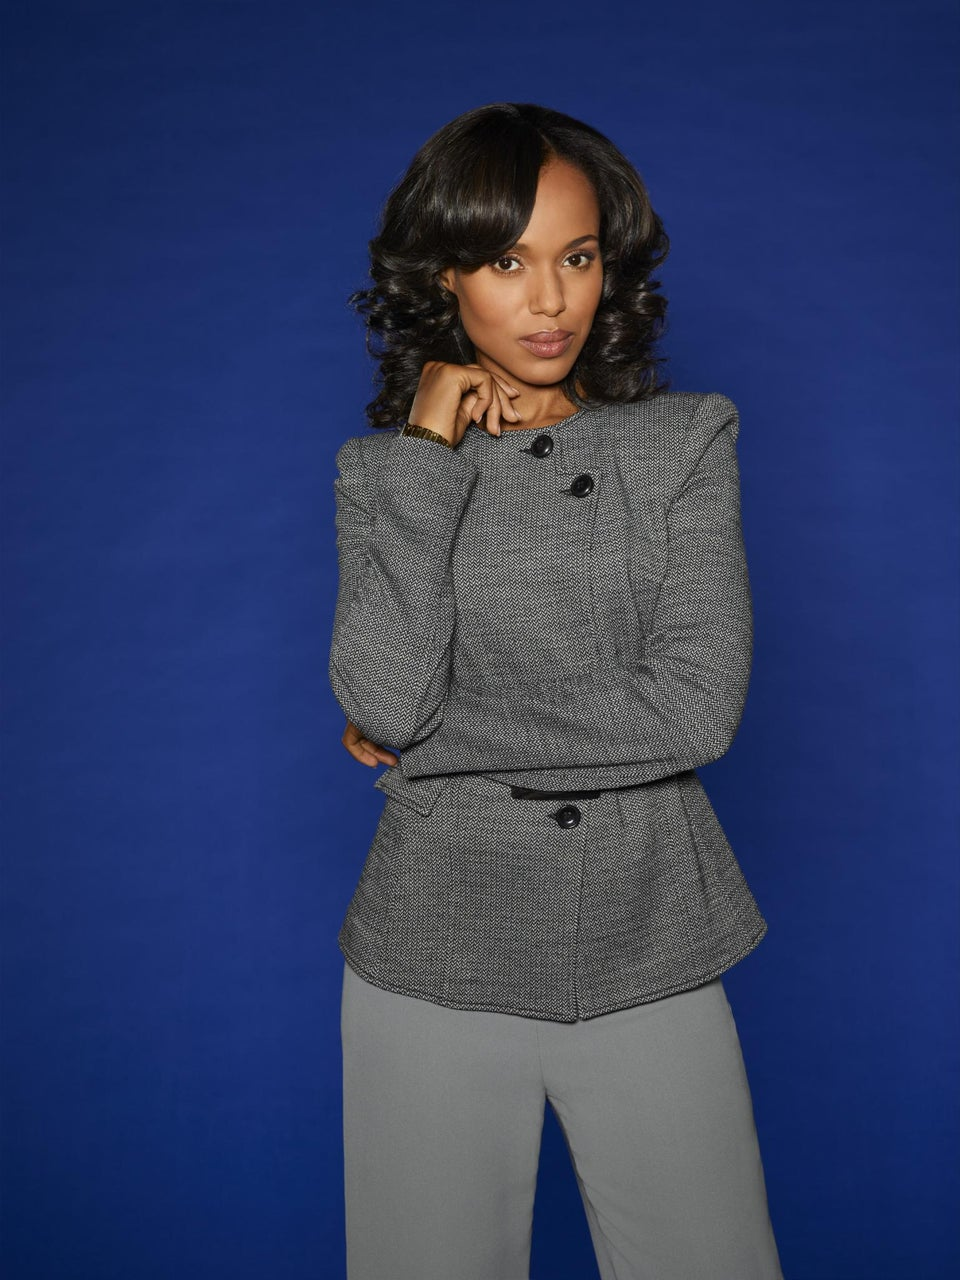 Relive Our 'Scandal' Finale Twitter Party